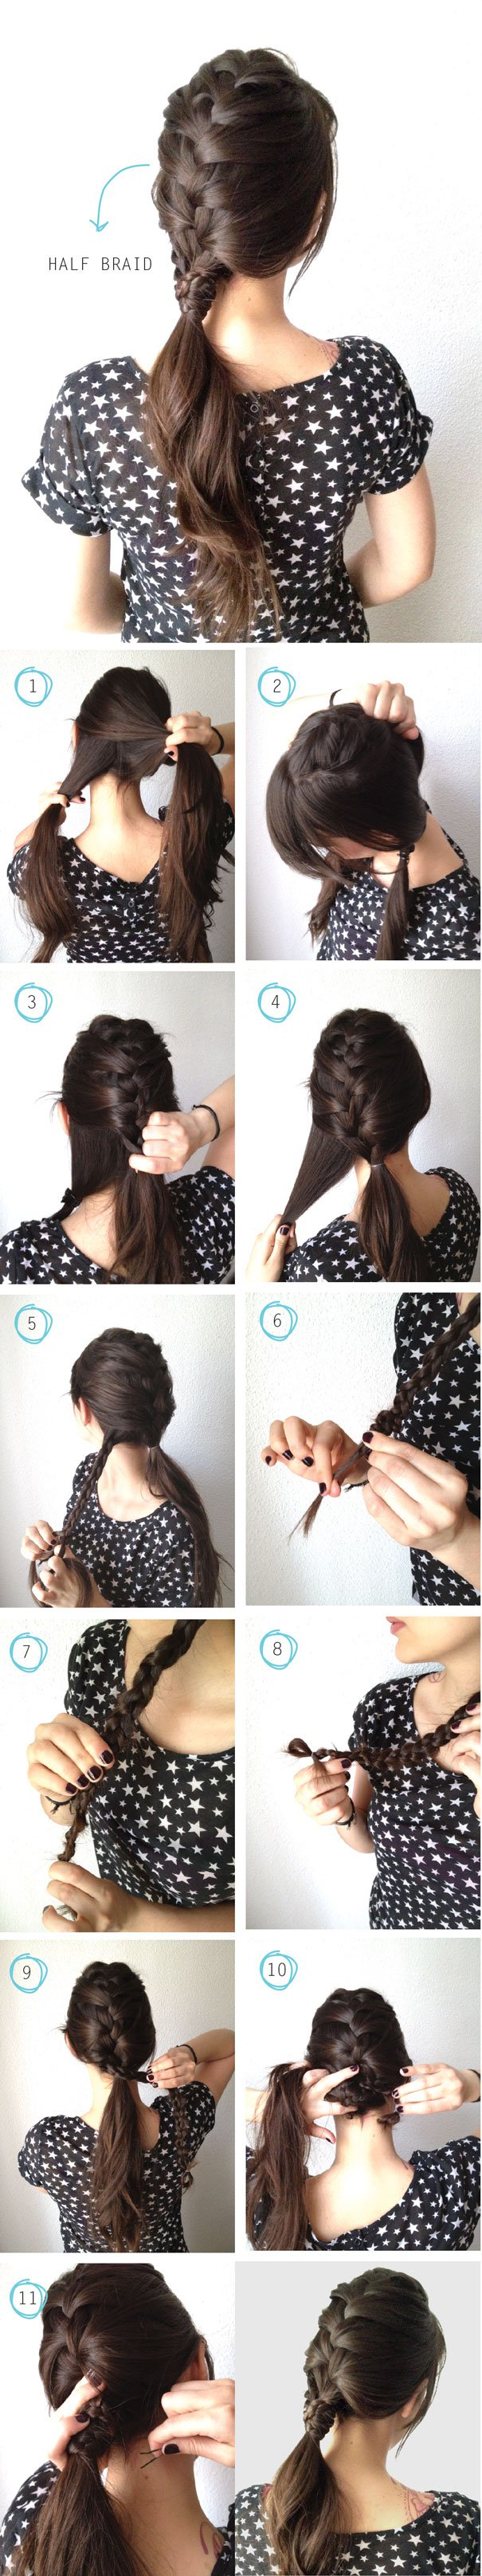 Half braid ponytail